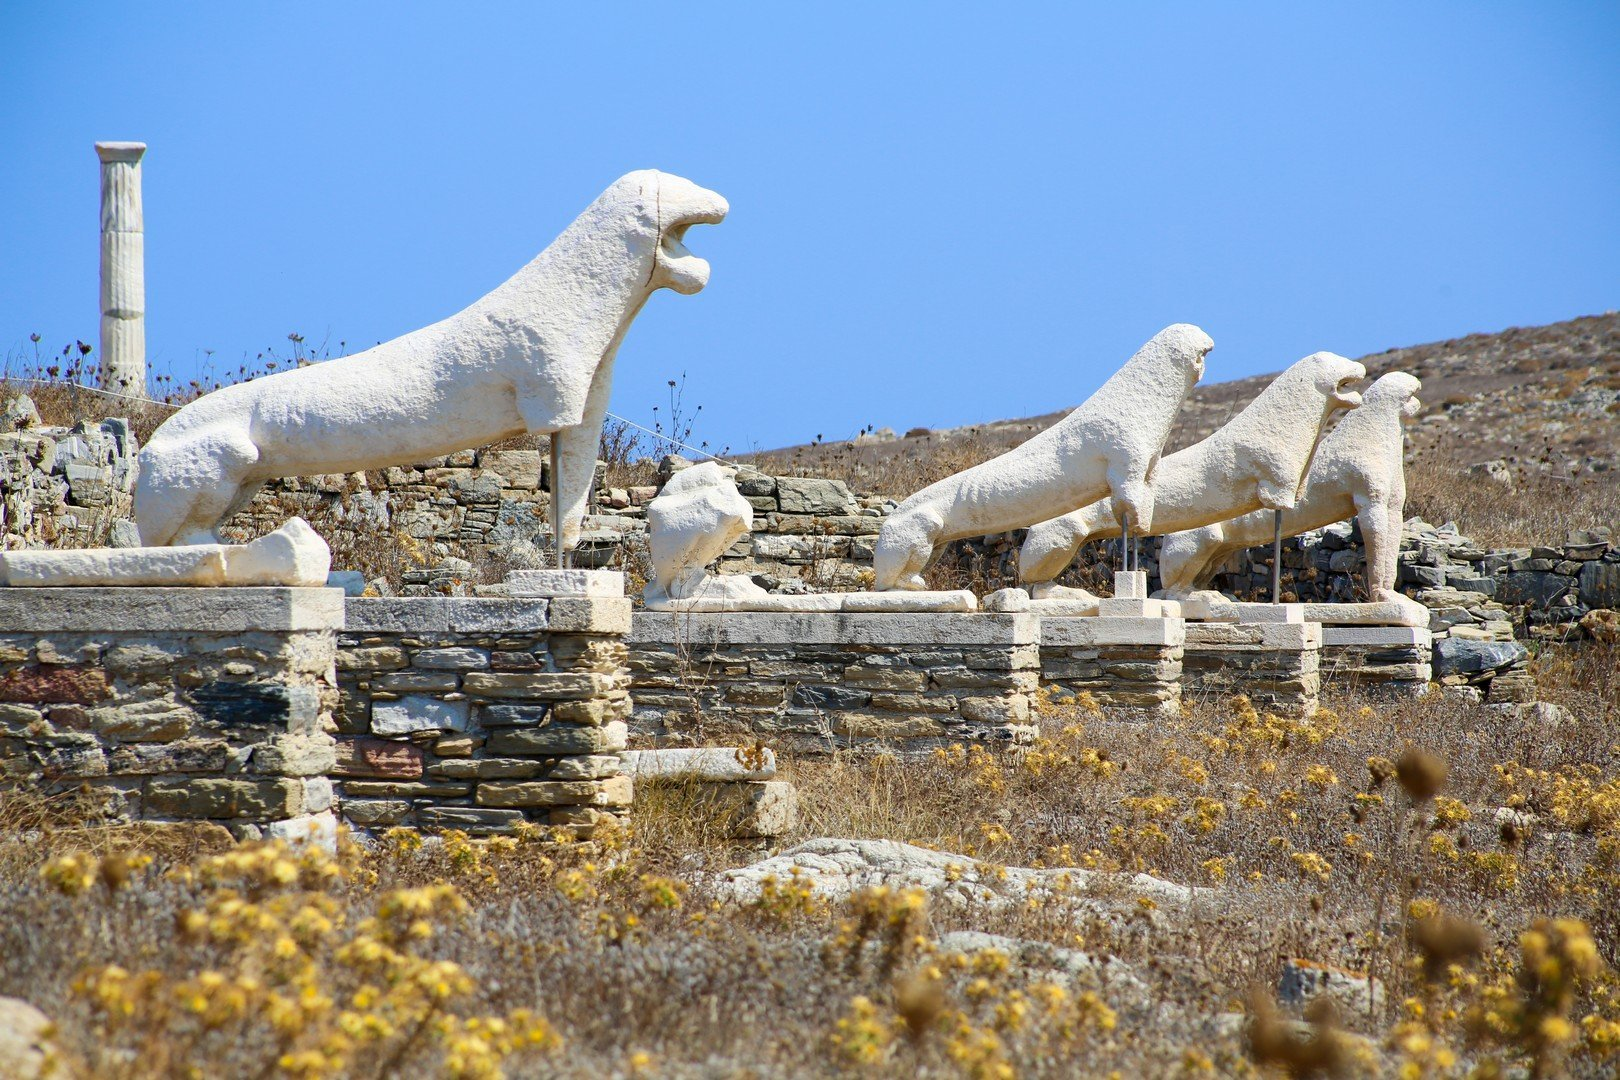 The island of Delos: an important archaeological site in Greece